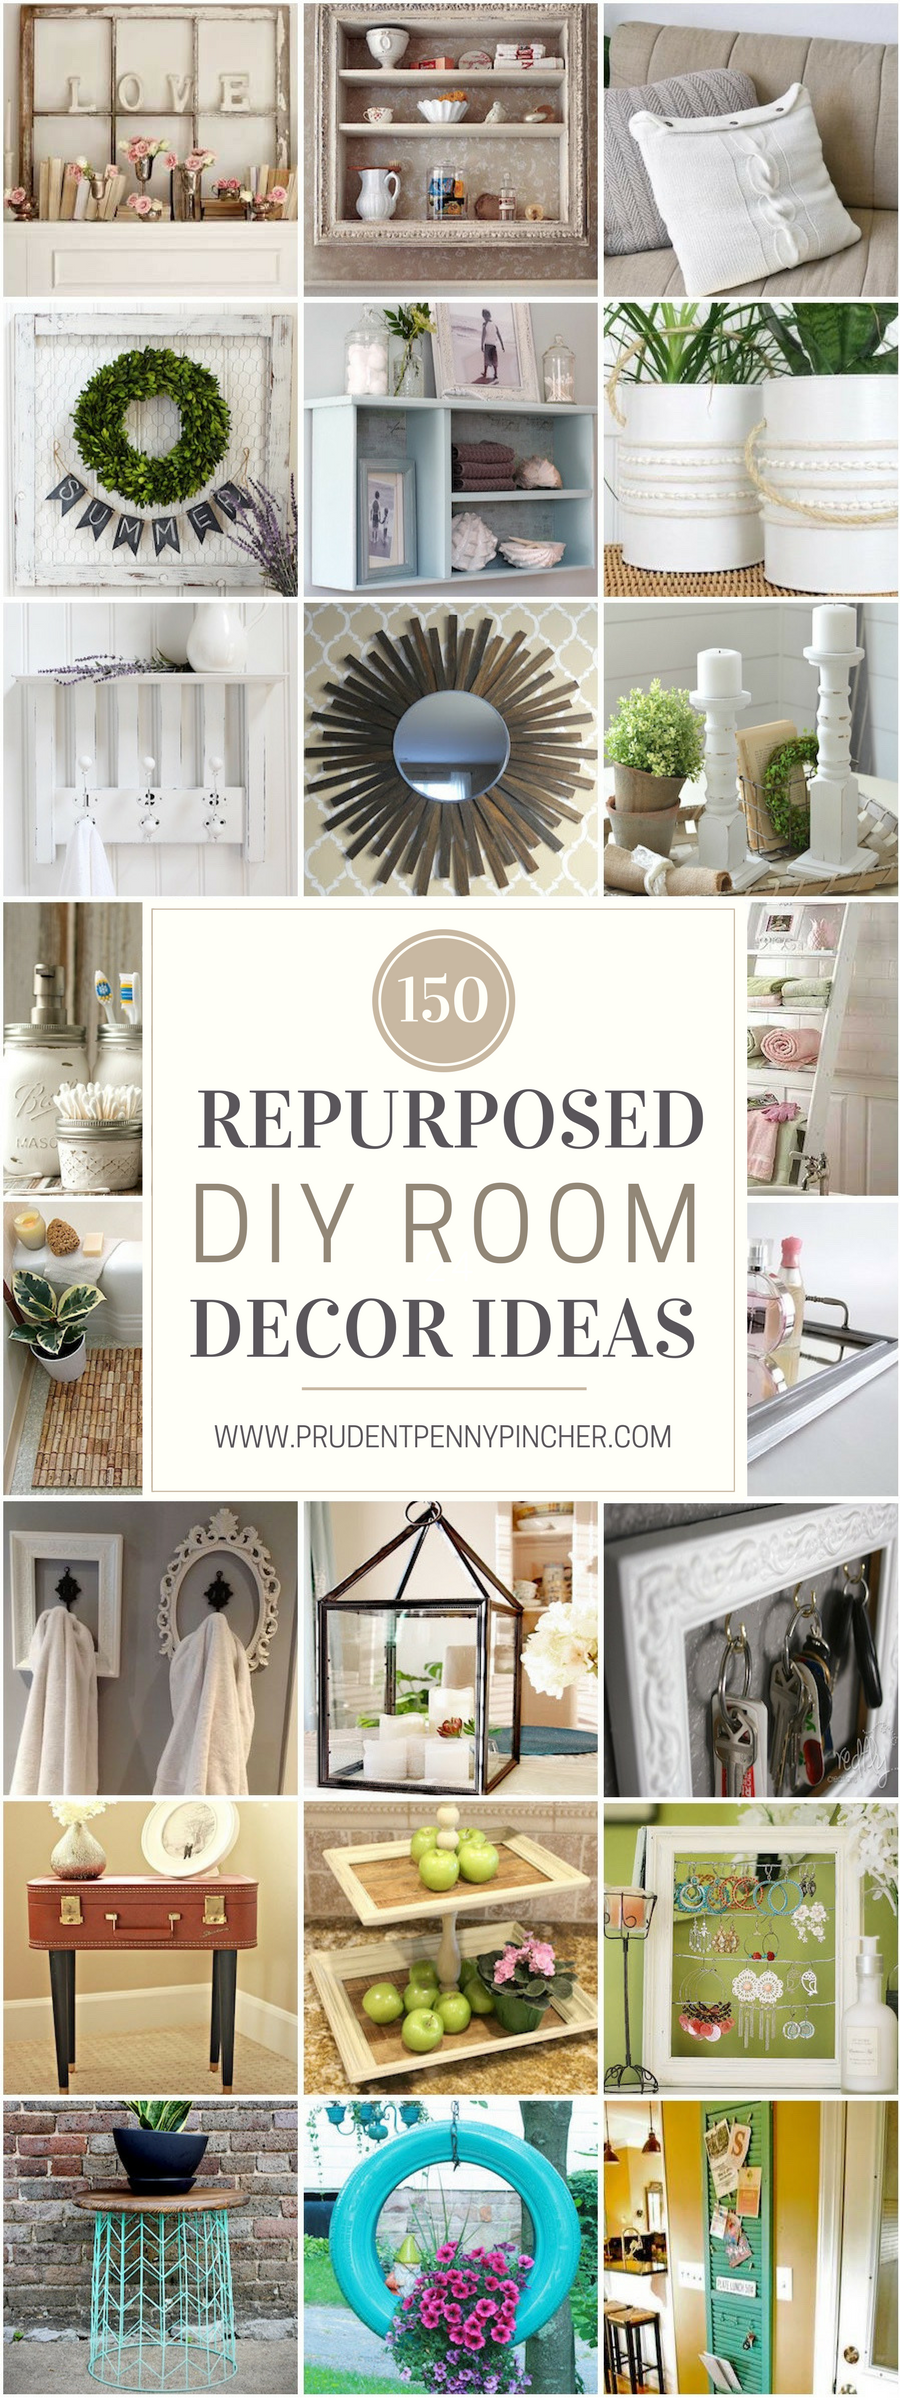 150 Repurposed DIY Room Decor Ideas - Prudent Penny Pincher